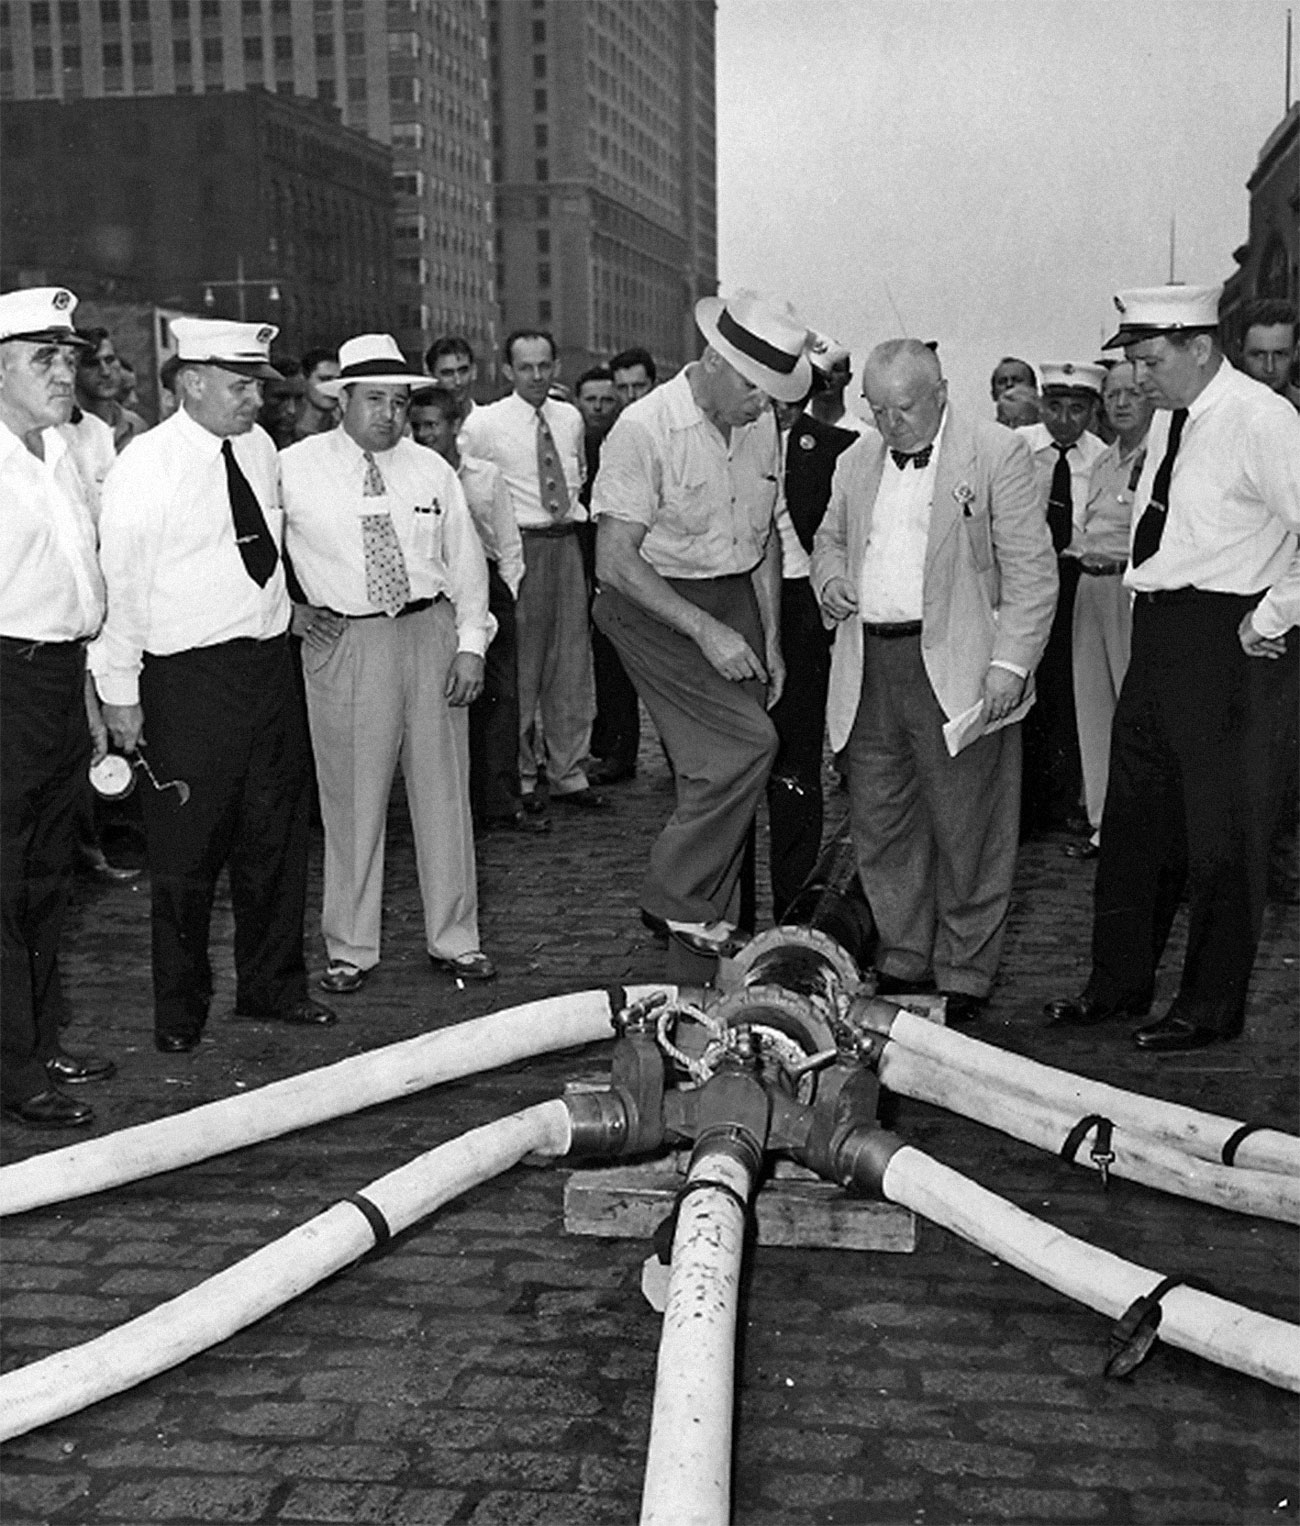 The 1951 New York City civil defense test showcased the firefighting and fire protection capabilities of Victaulic products, helping Victaulic enter the market in 1952.